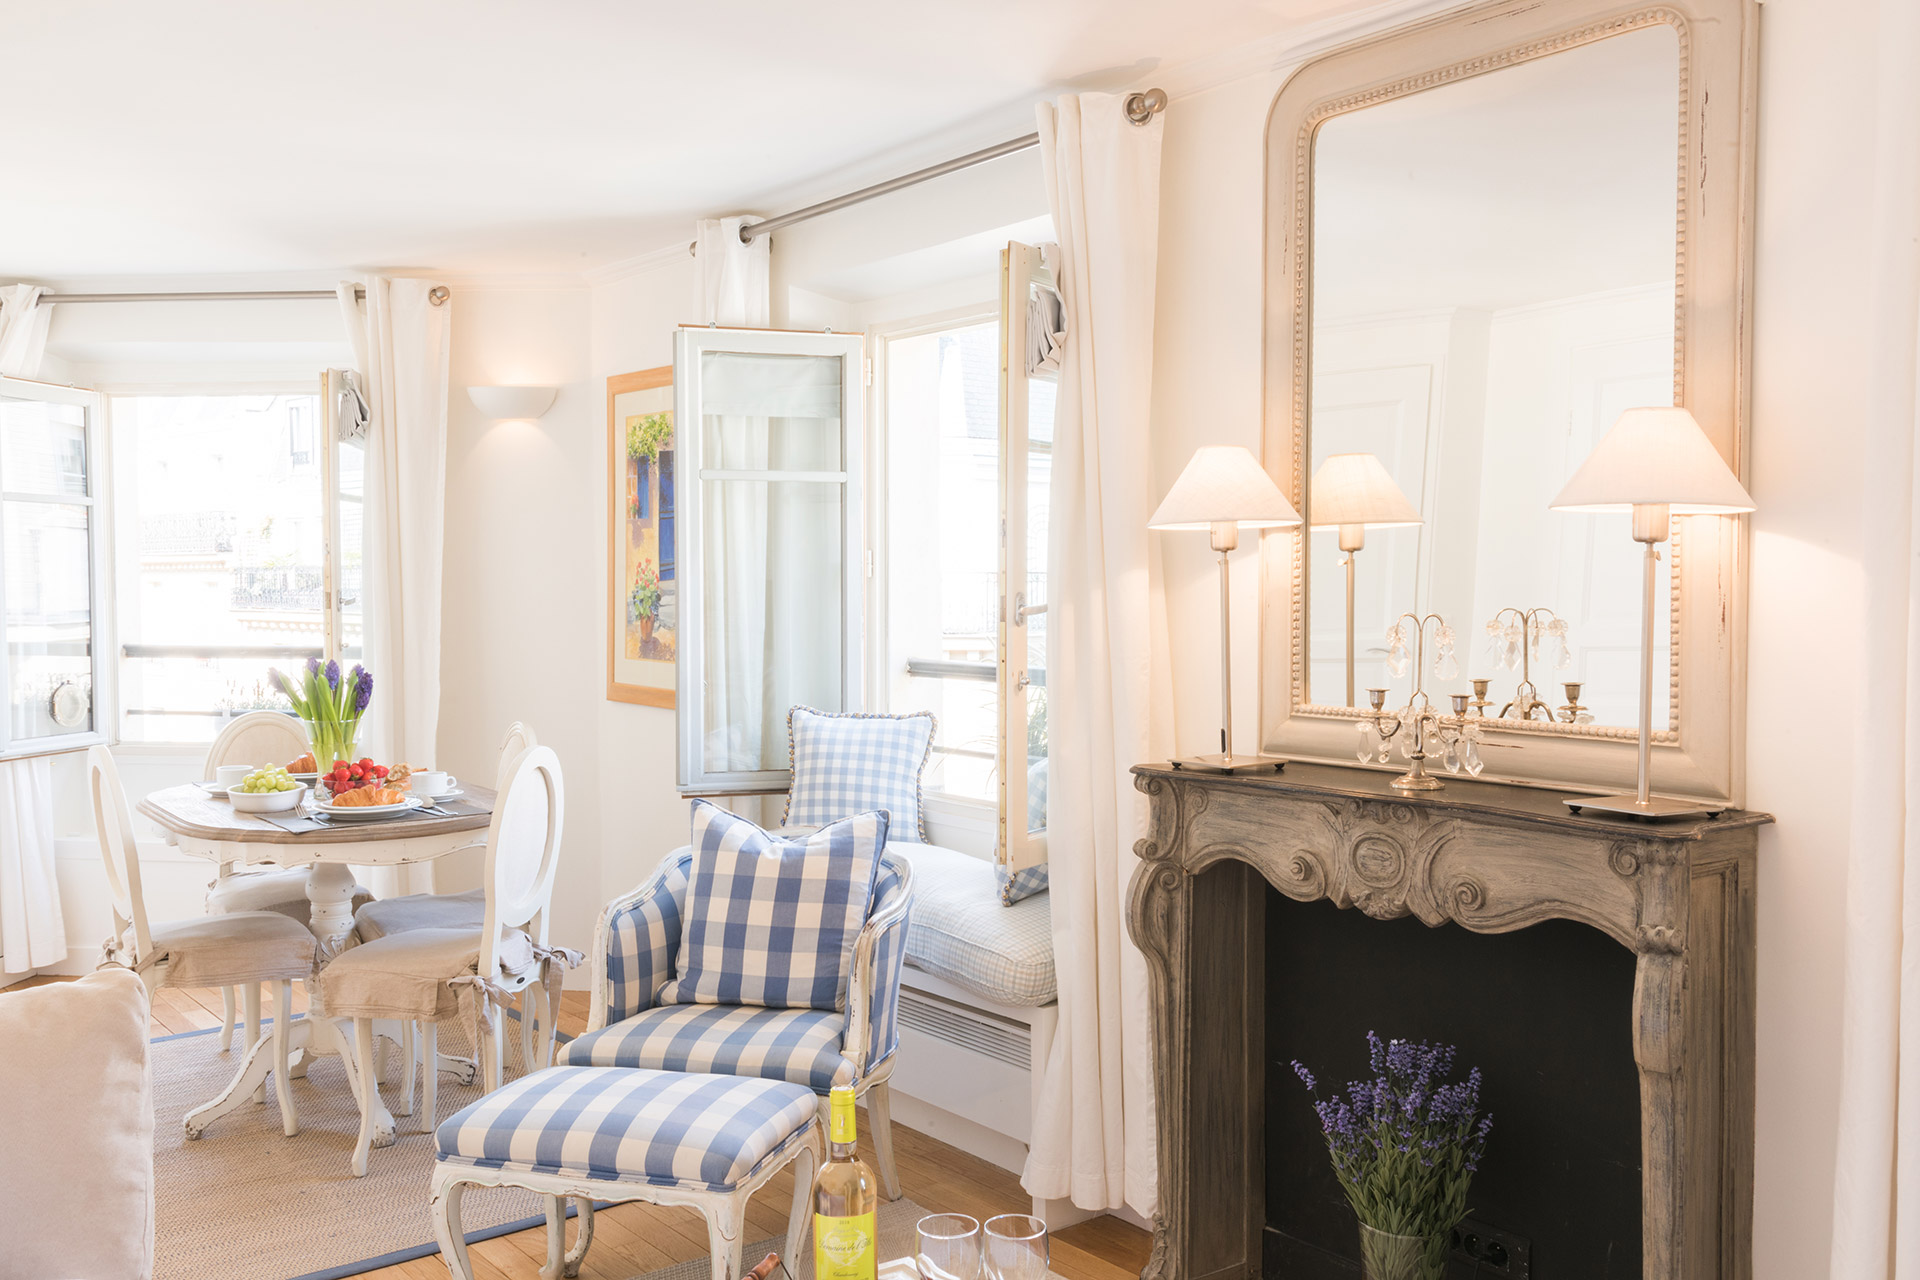 Open plan living room maximizes the space in the Pomerol vacation rental offered by Paris Perfect